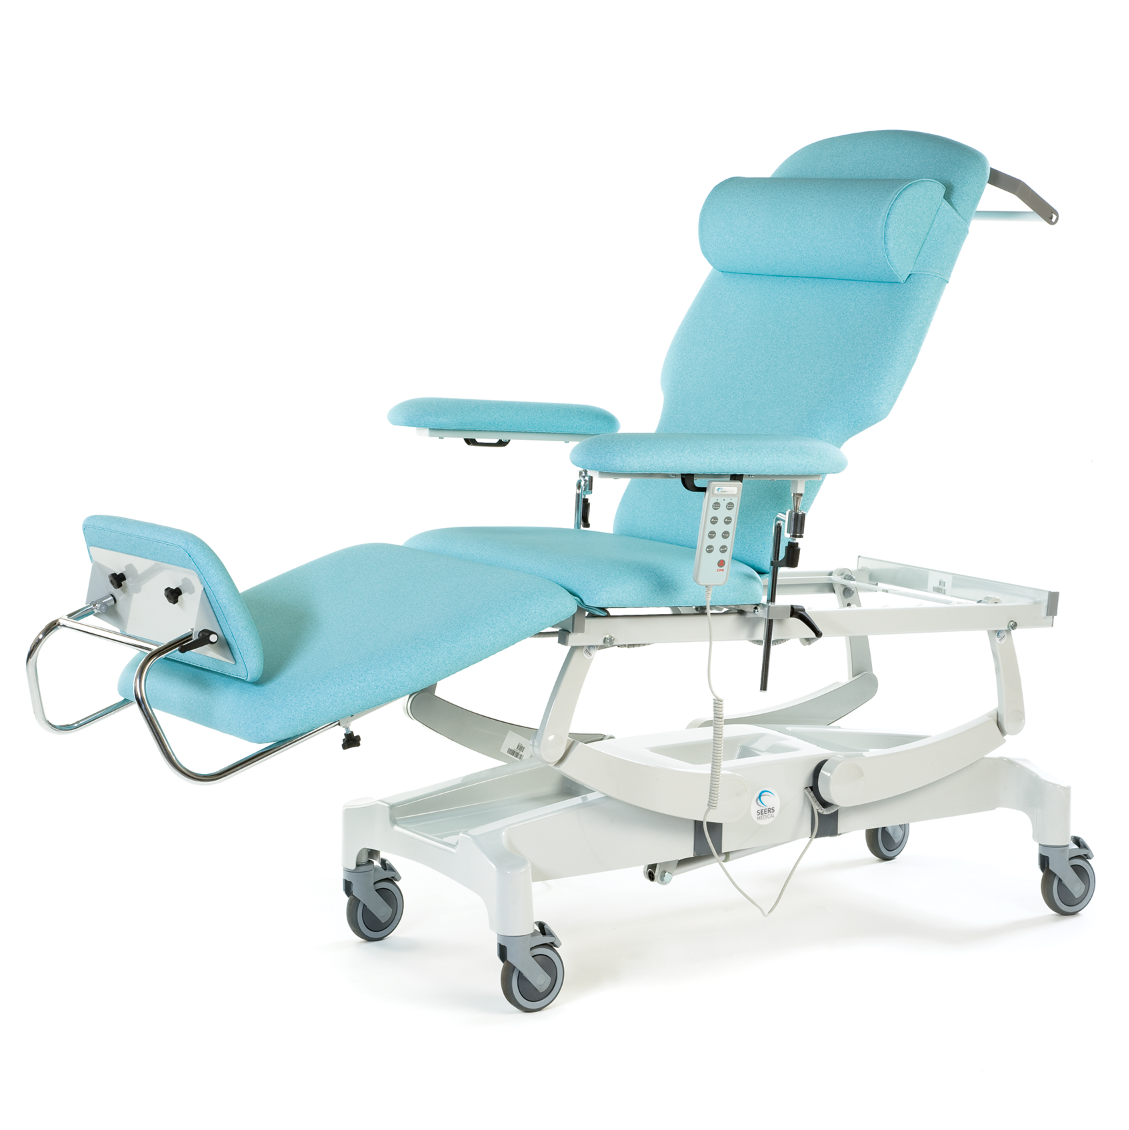 Clinical Range | SEERS Medical Specialist Medical Couches